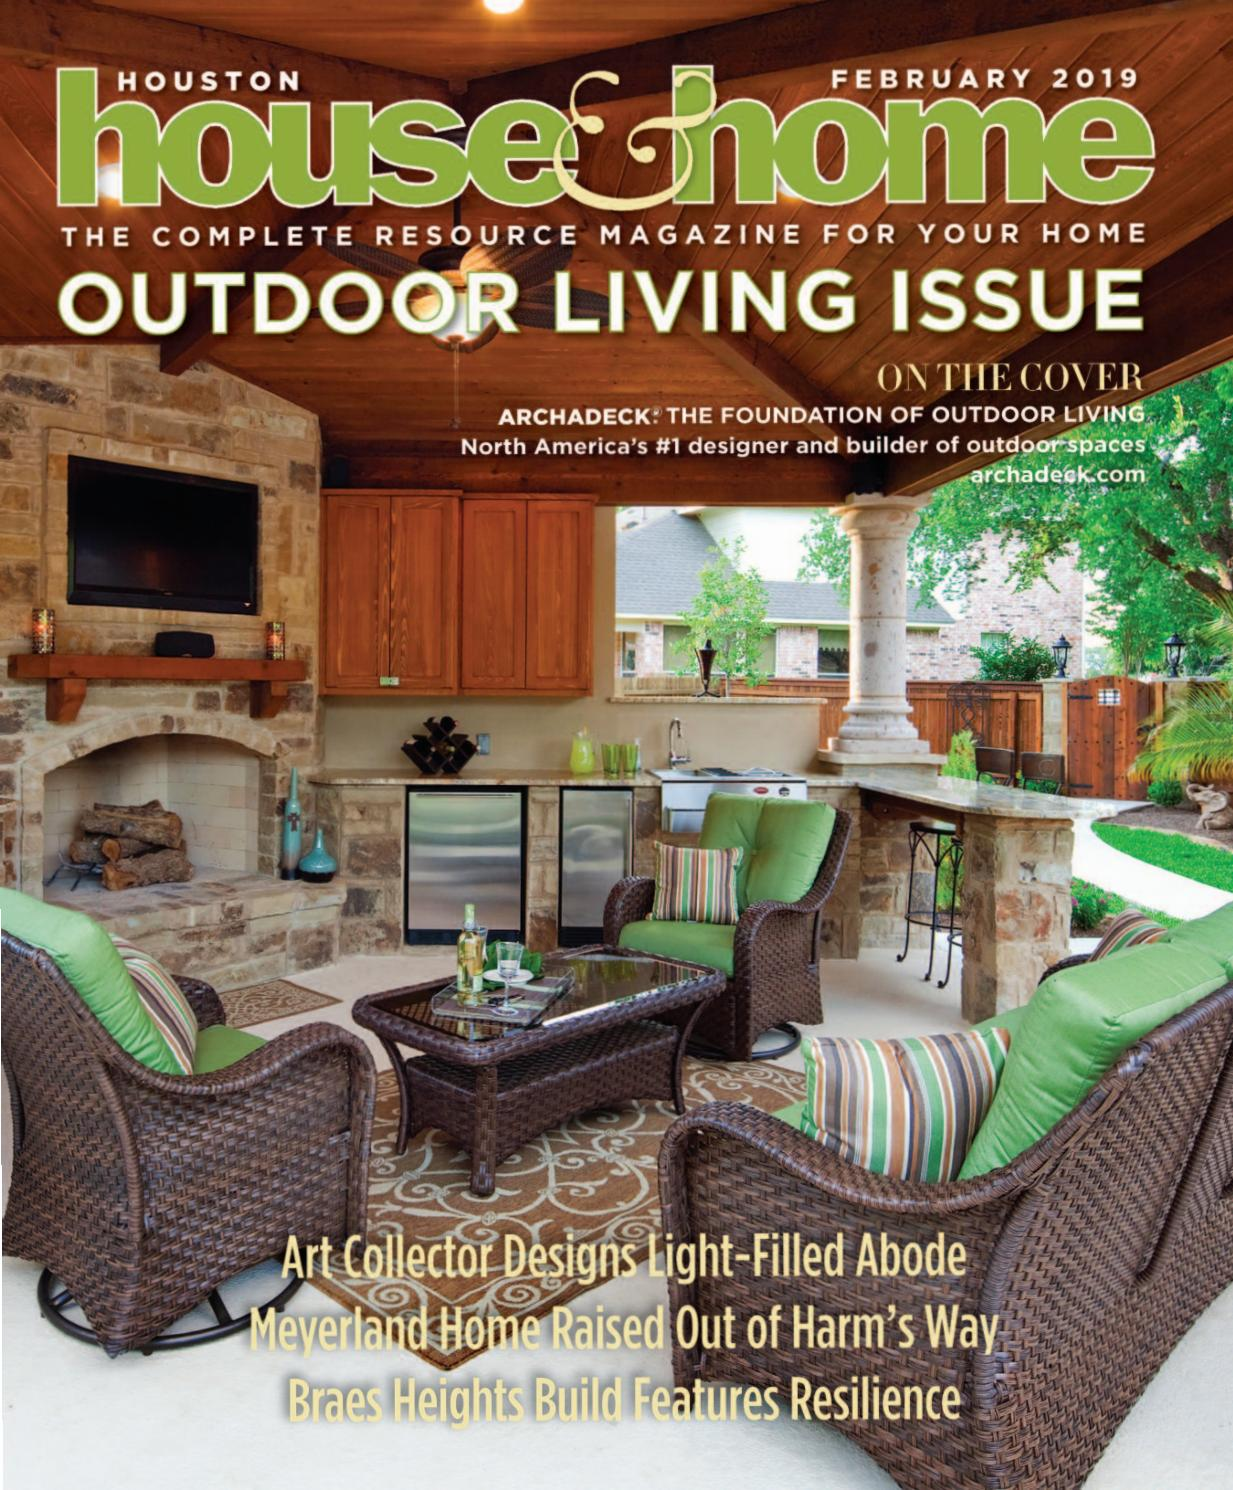 Houston house home magazine february 2019 issue by houston house home magazine issuu